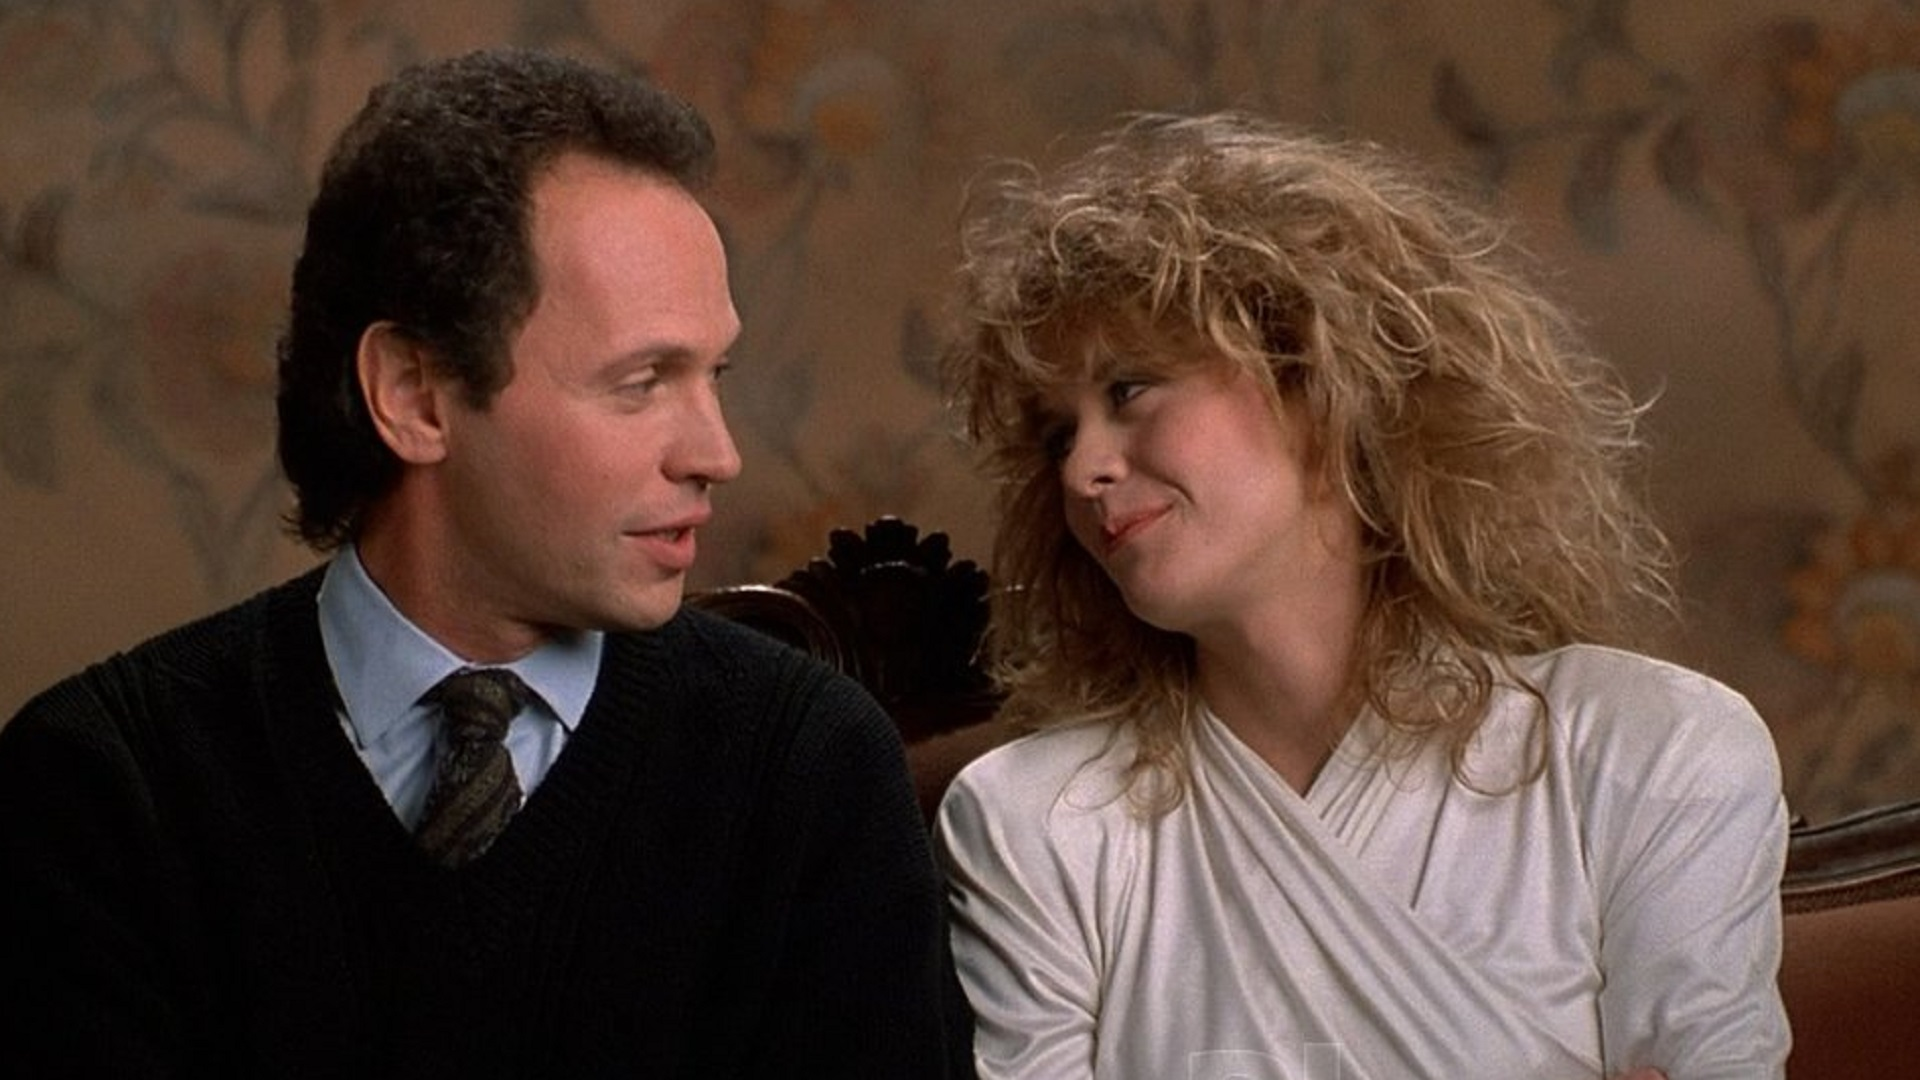 Billy Crystal and Meg Ryan in the decidedly not unromanticized When Harry Met Sally...